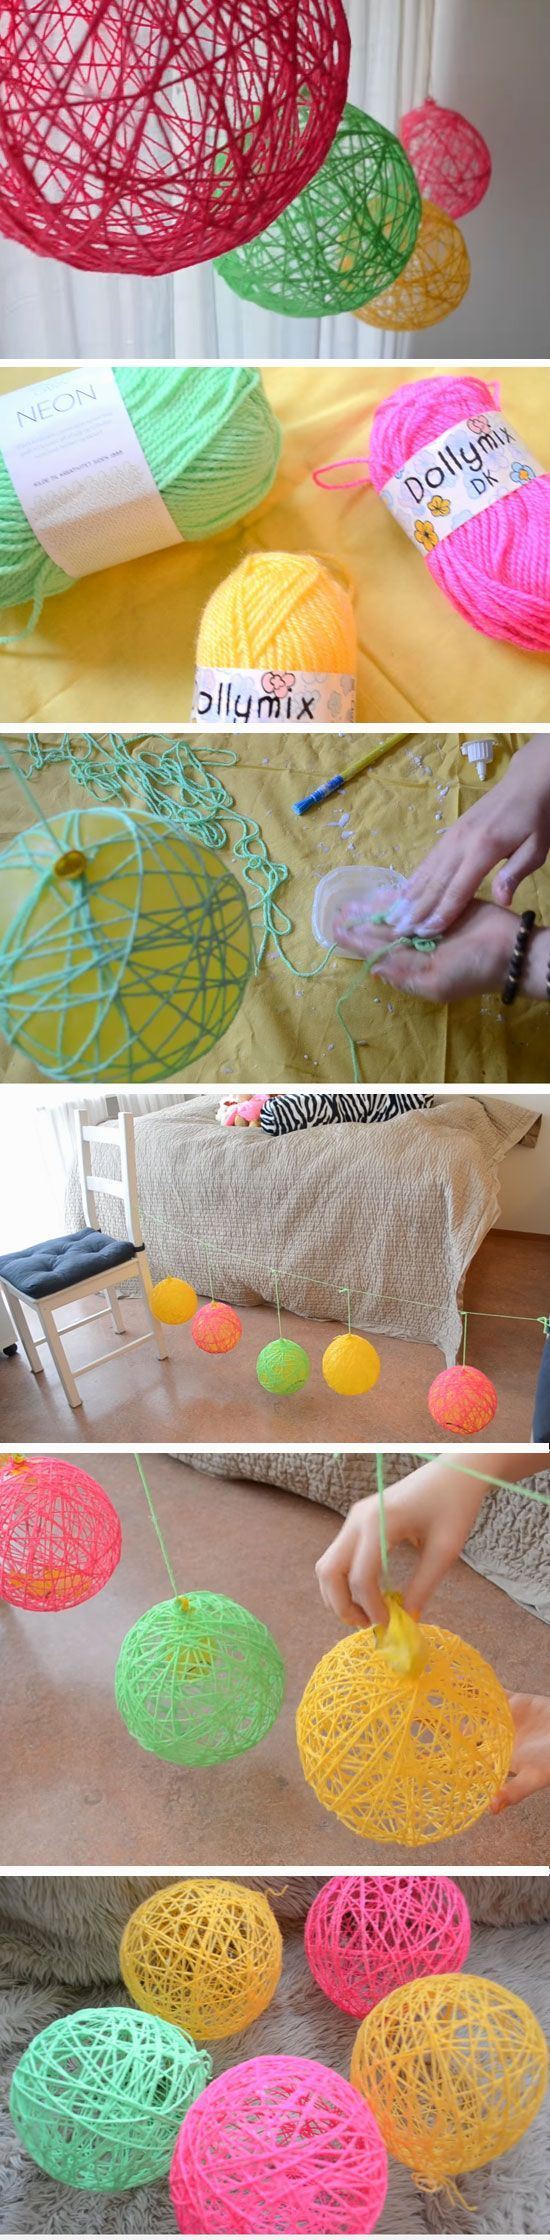 Summer Decor Ideas best 25+ diy summer decorations ideas on pinterest | summer diy